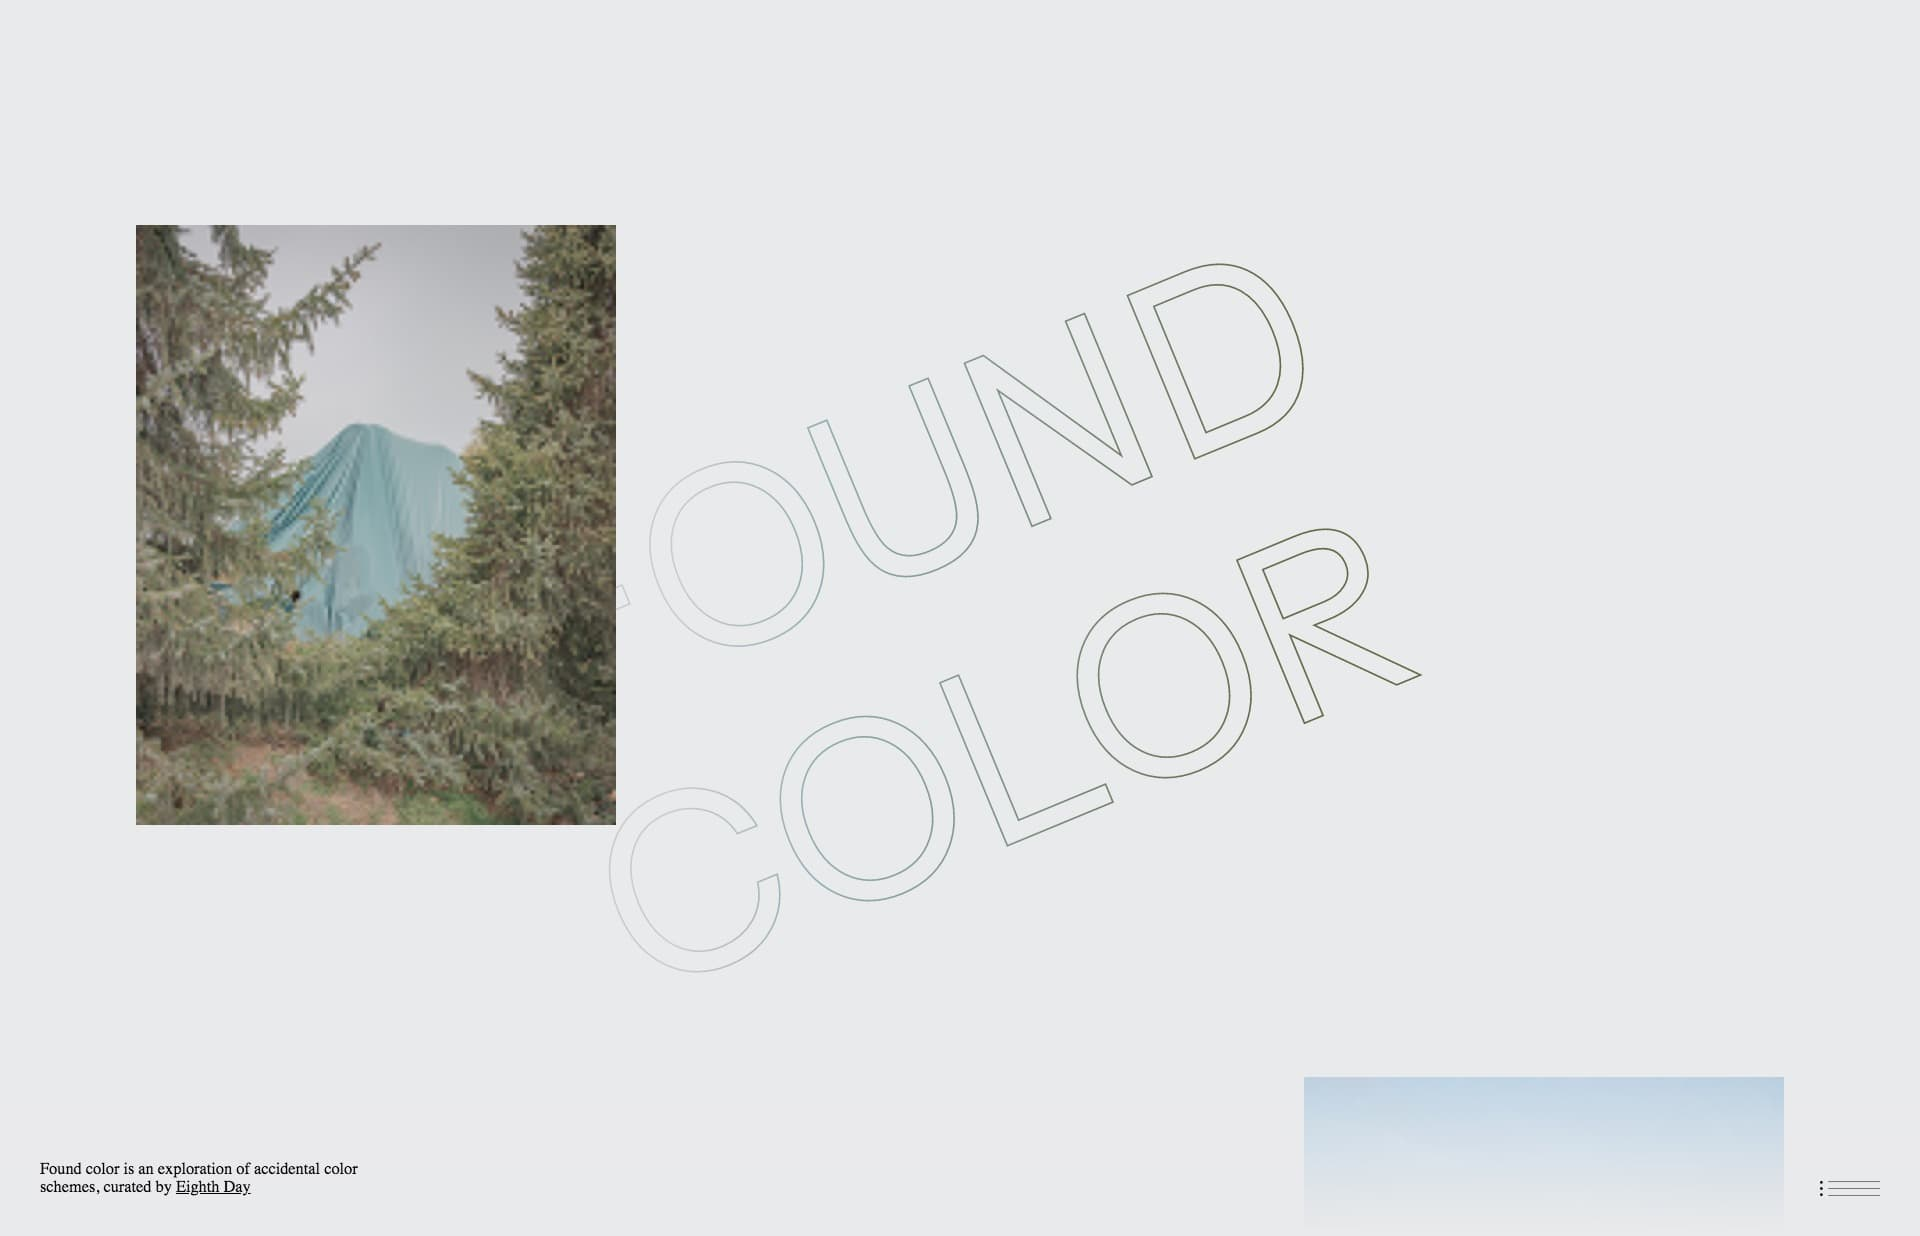 Screenshot of the website FOUND COLOR, featured on The Gallery, a curated collection of minimal websites